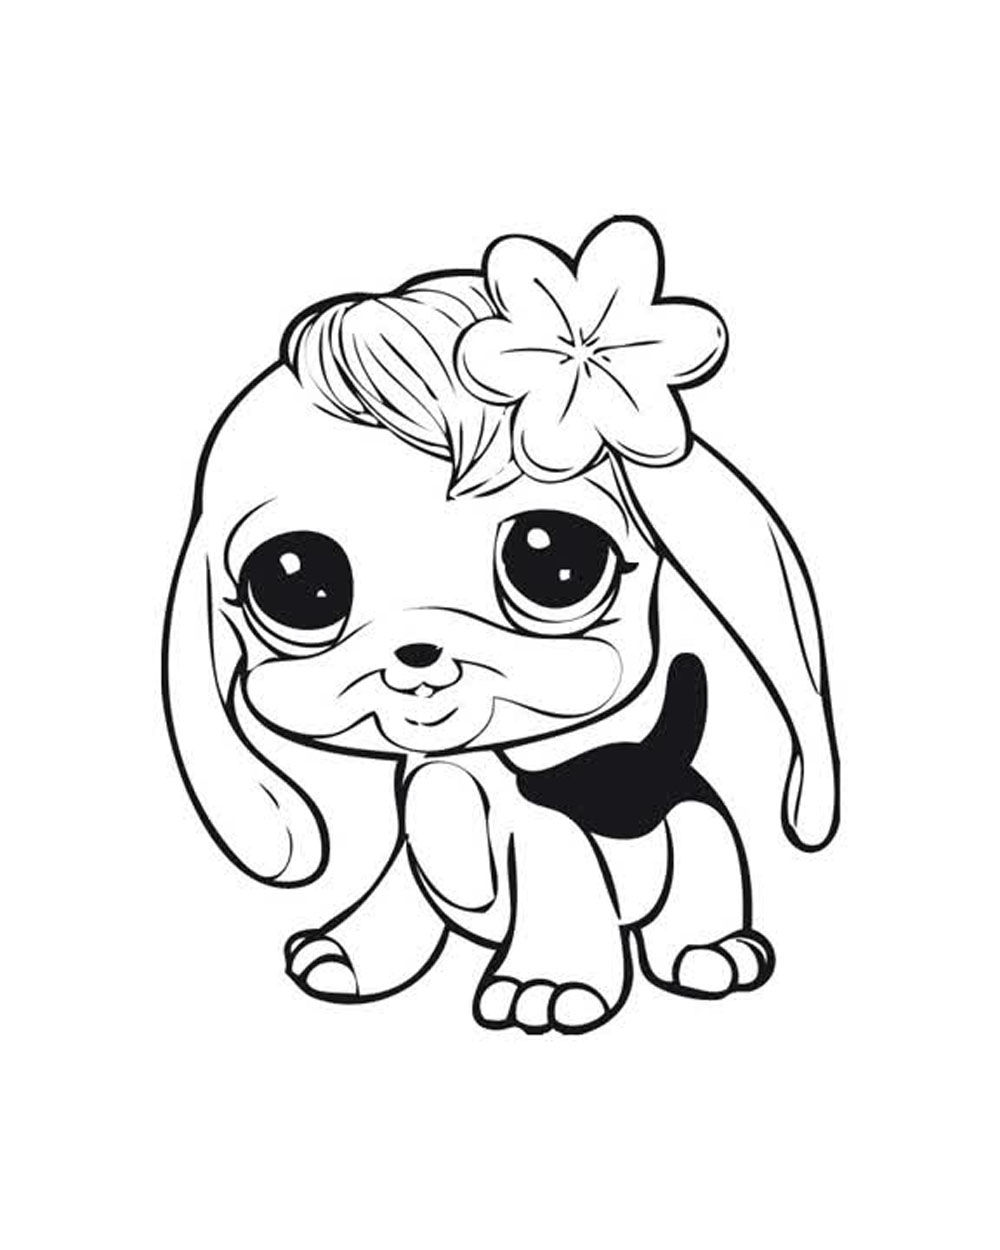 lps pictures to color coloringpageslpslittlestpetshop0039jpg 703800 pictures lps color to